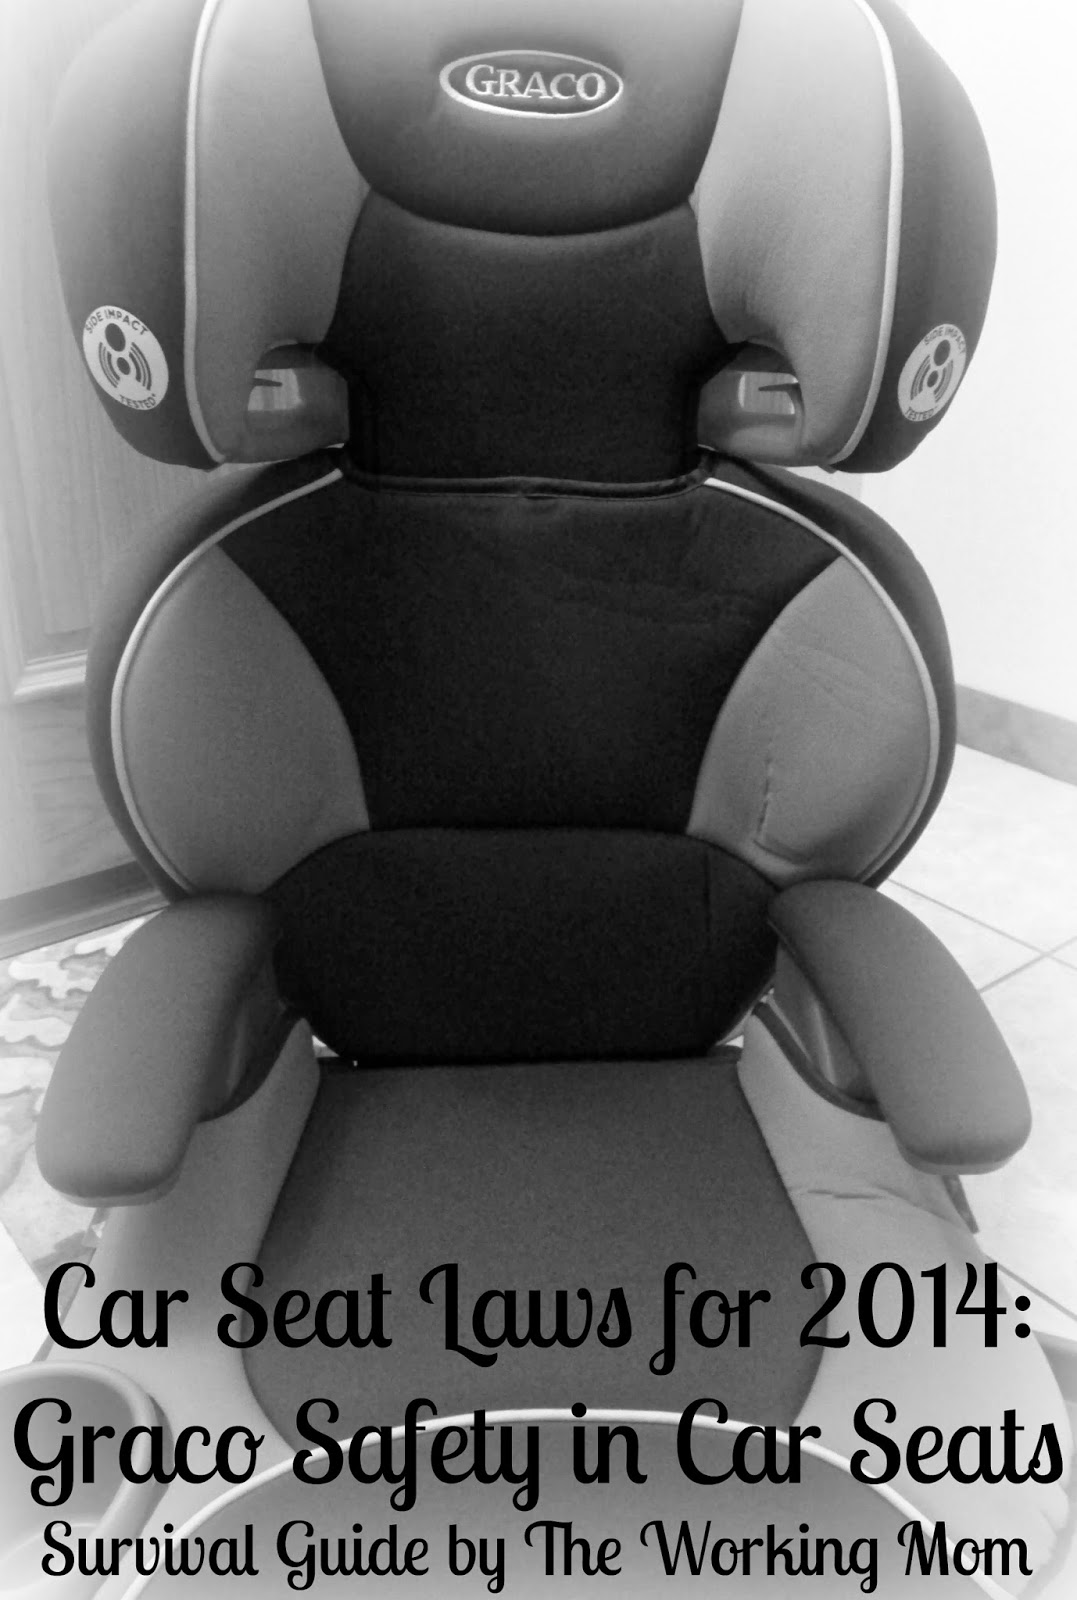 car seat laws for 2014 graco affix booster seat leads in car seat safety. Black Bedroom Furniture Sets. Home Design Ideas